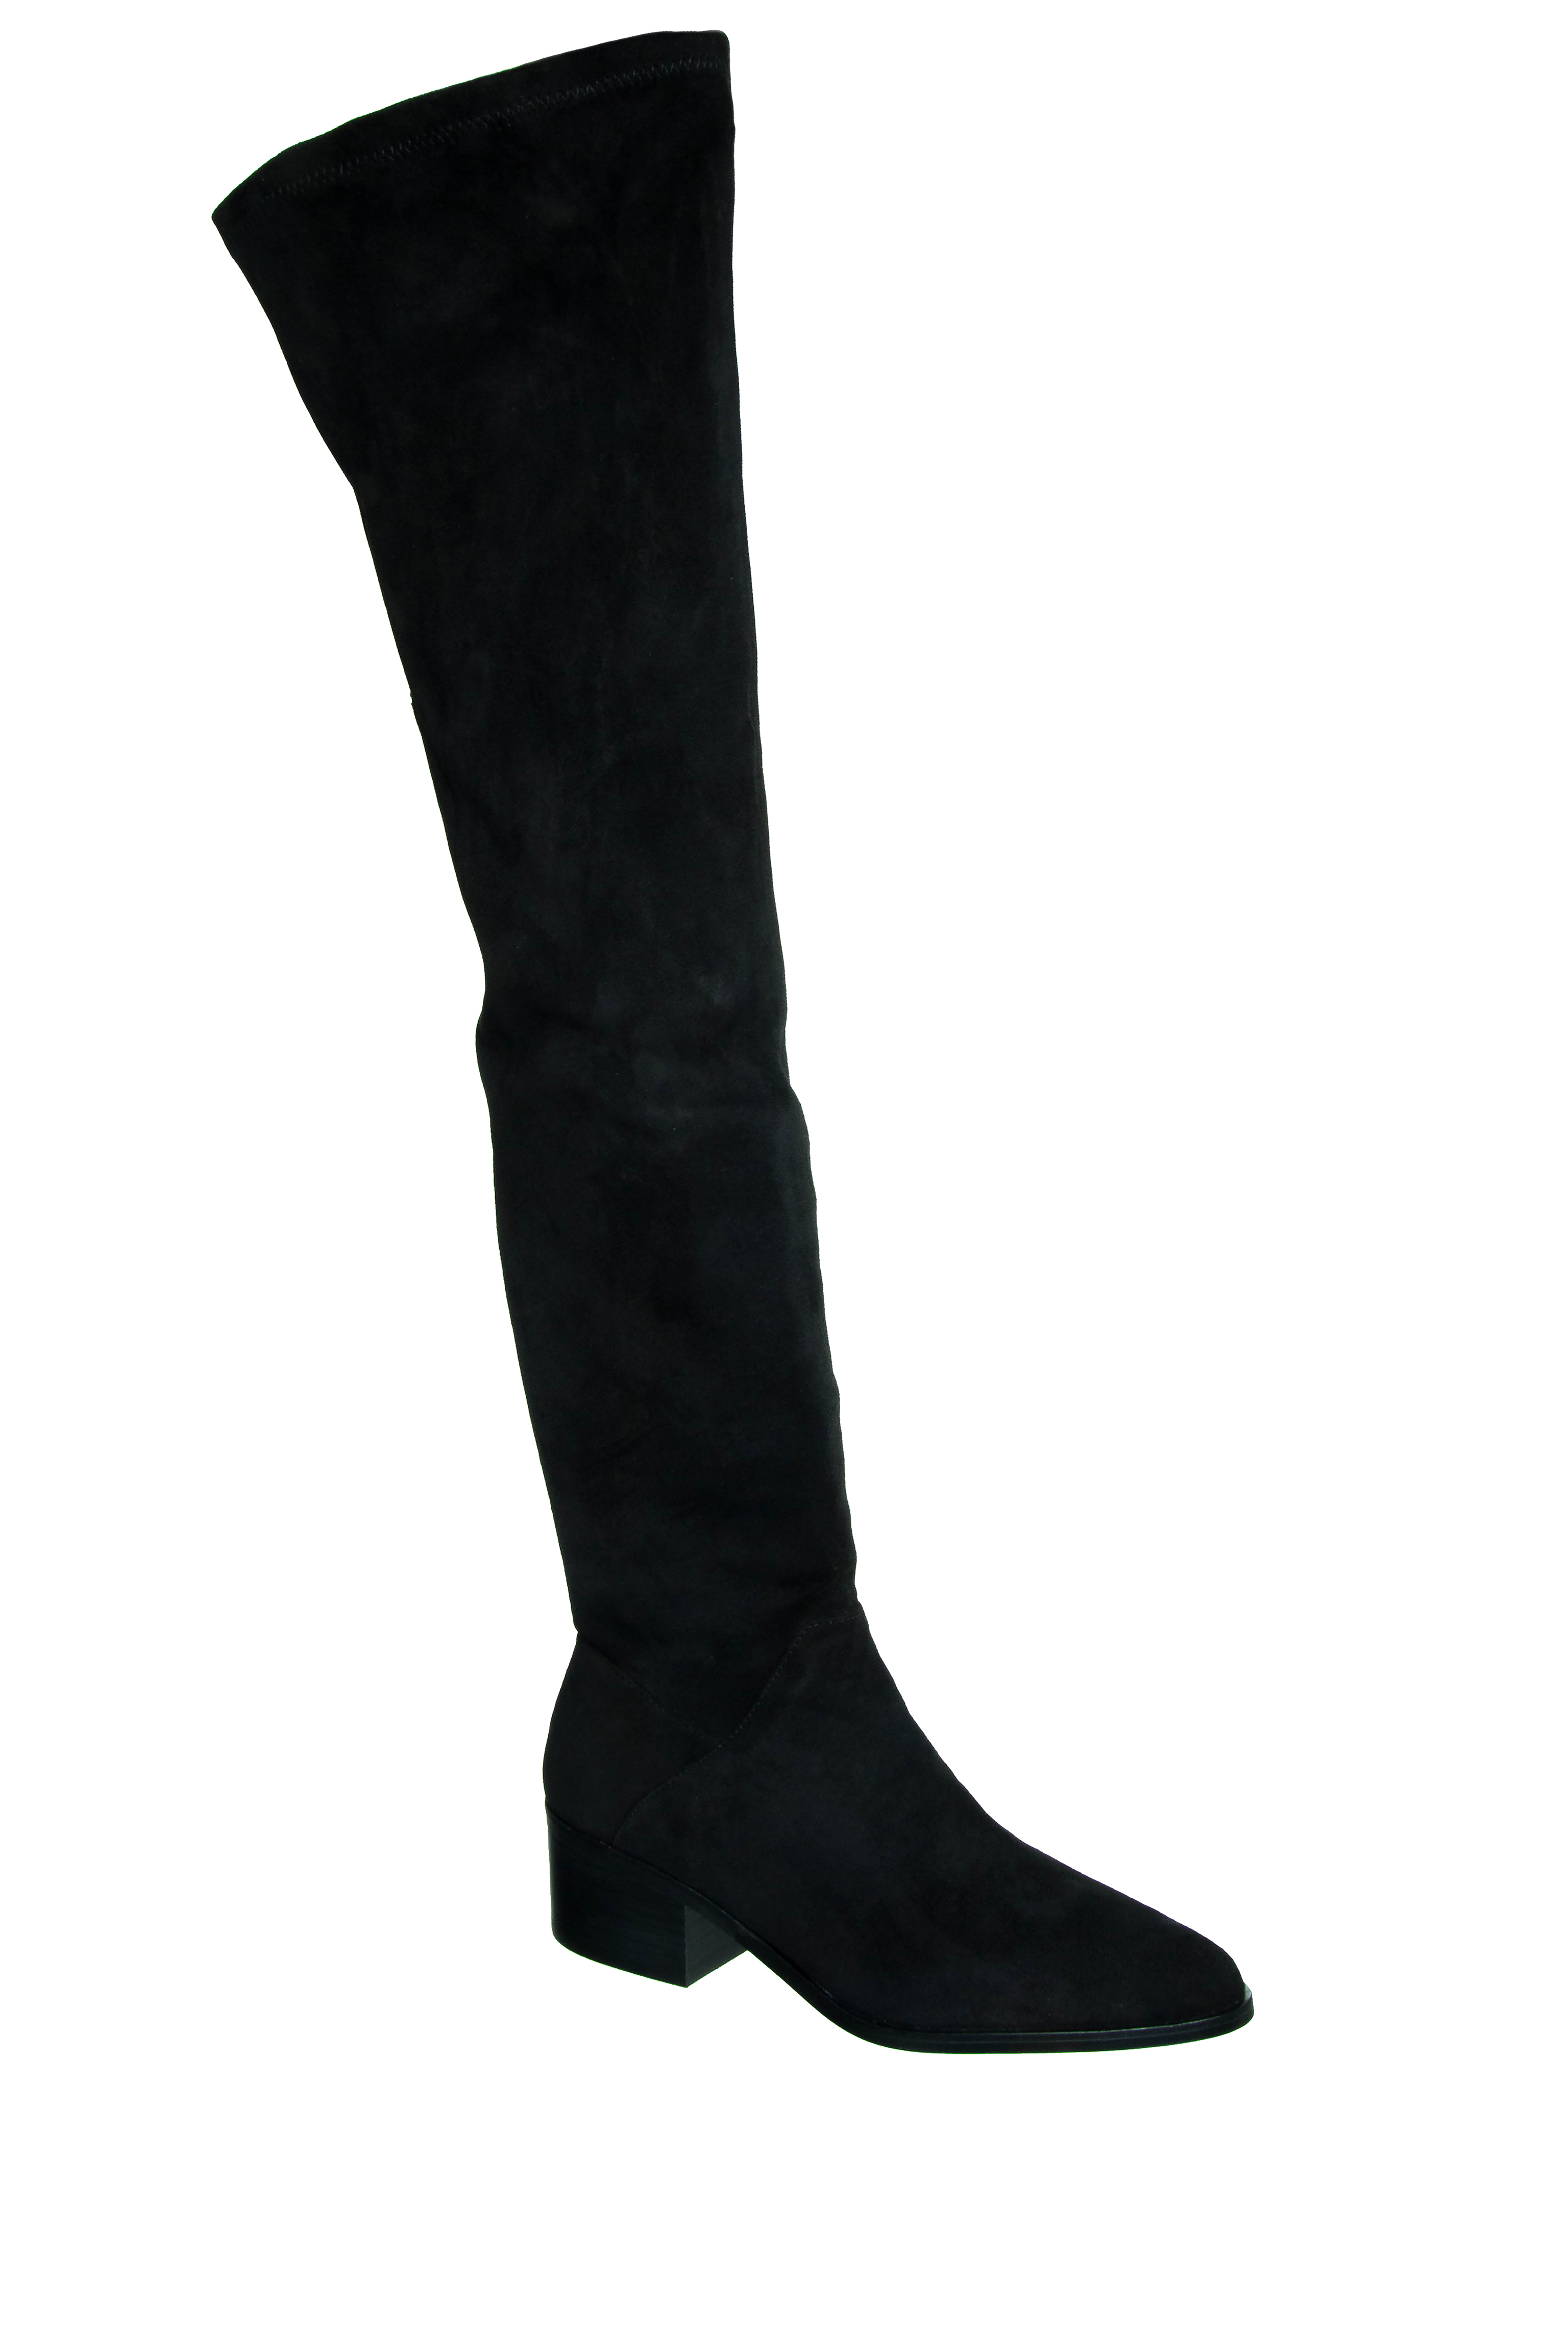 Steve Madden Gabriana Over-The-Knee Zip Boots - Black Suede